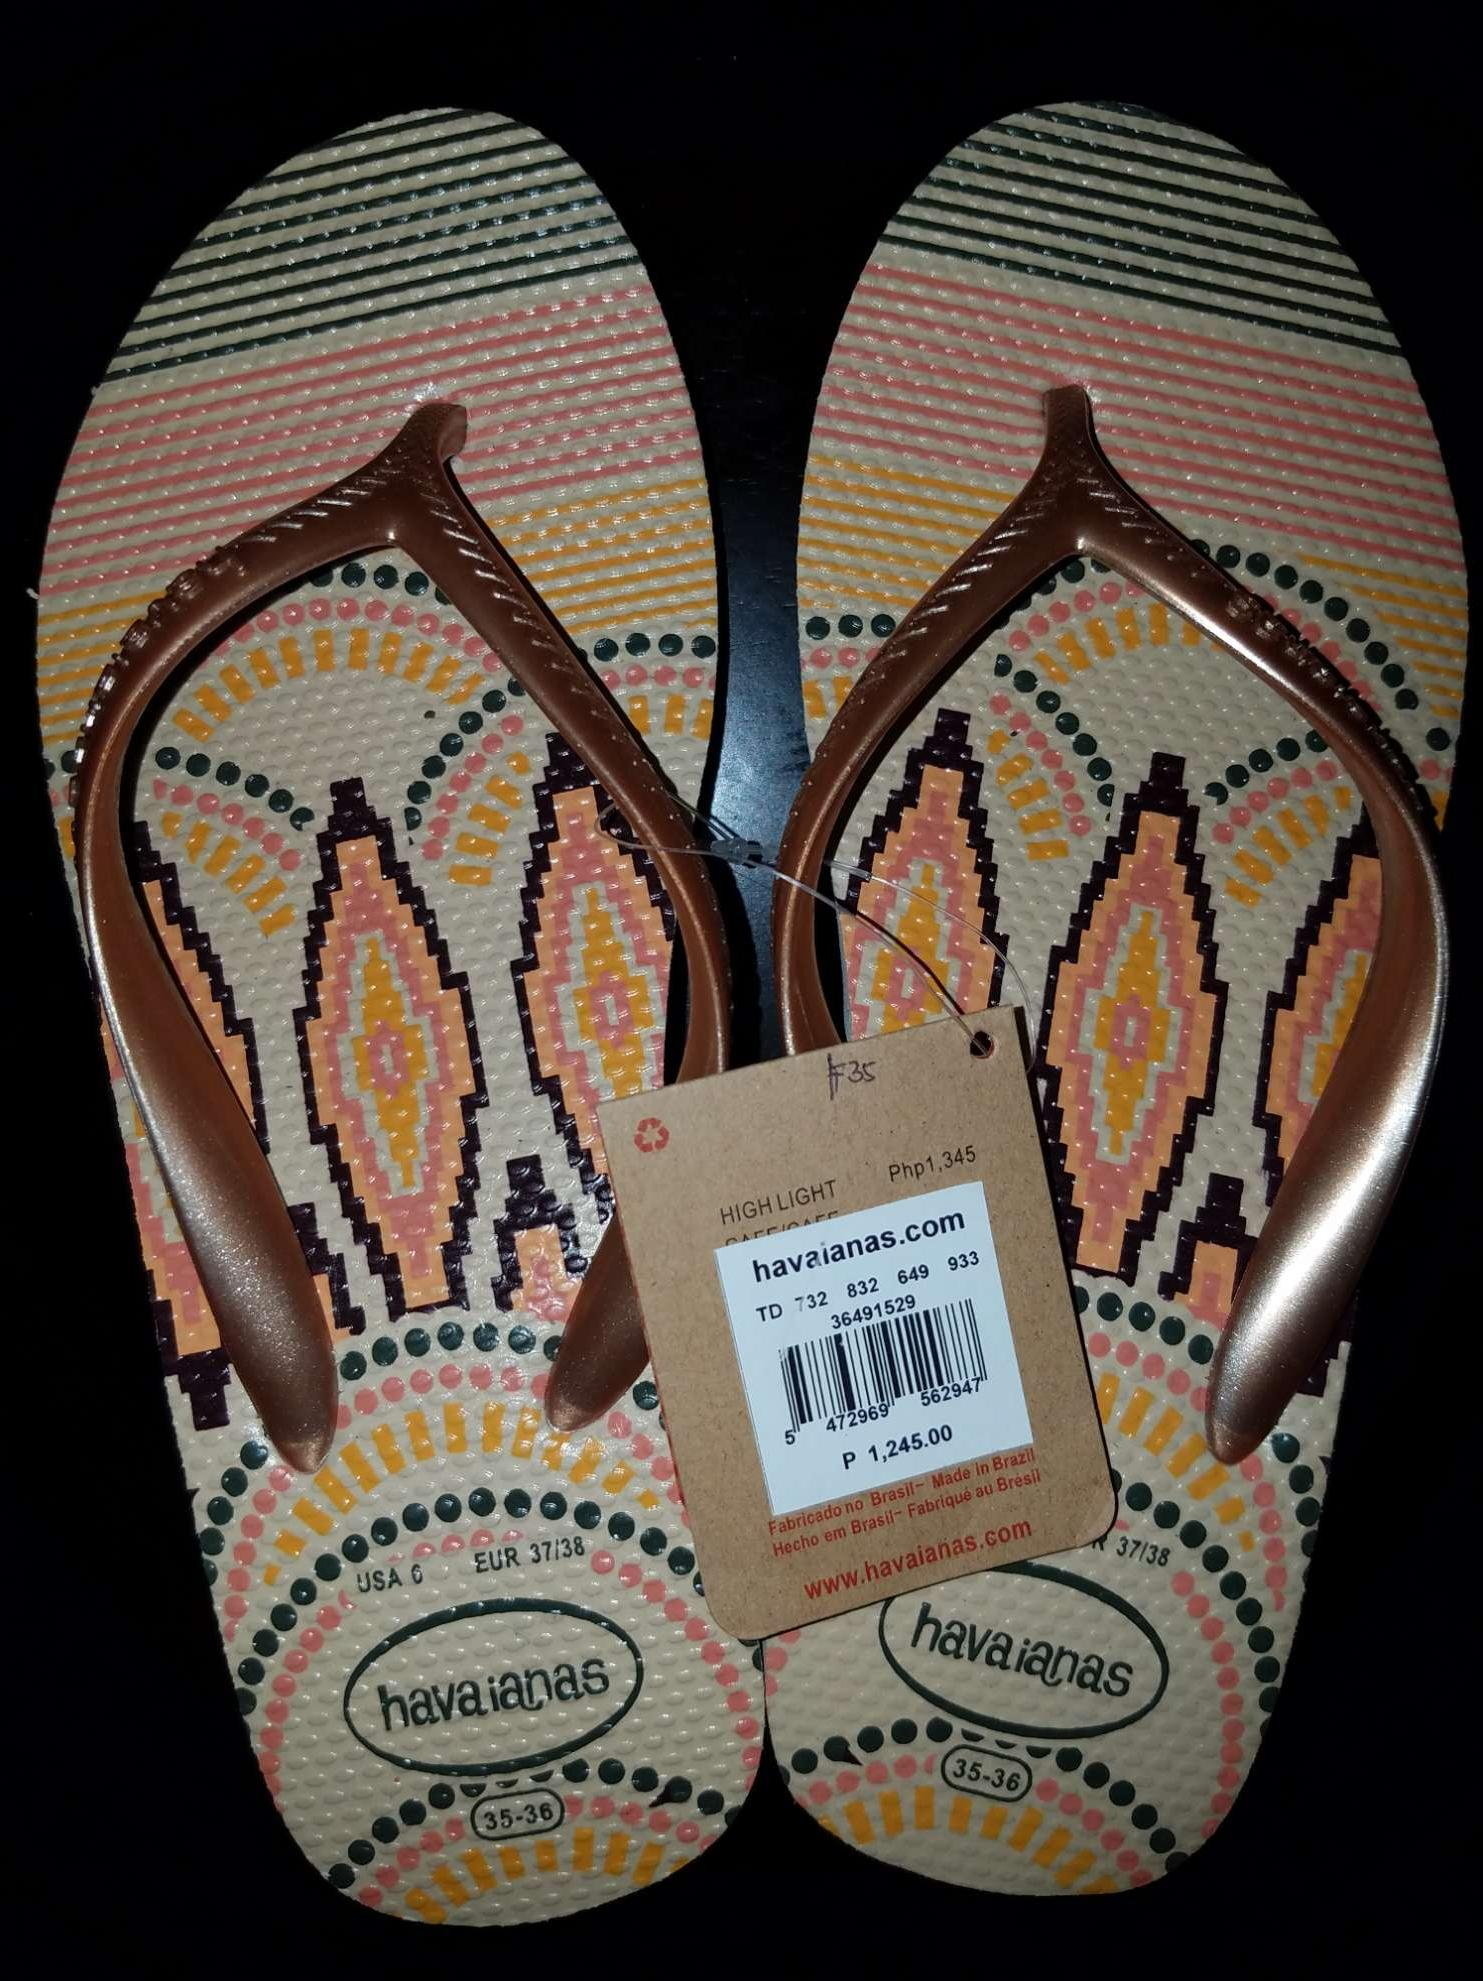 f0fe6a90c Sandals wedge H vz for women 100% Original size 35 wedge with box!